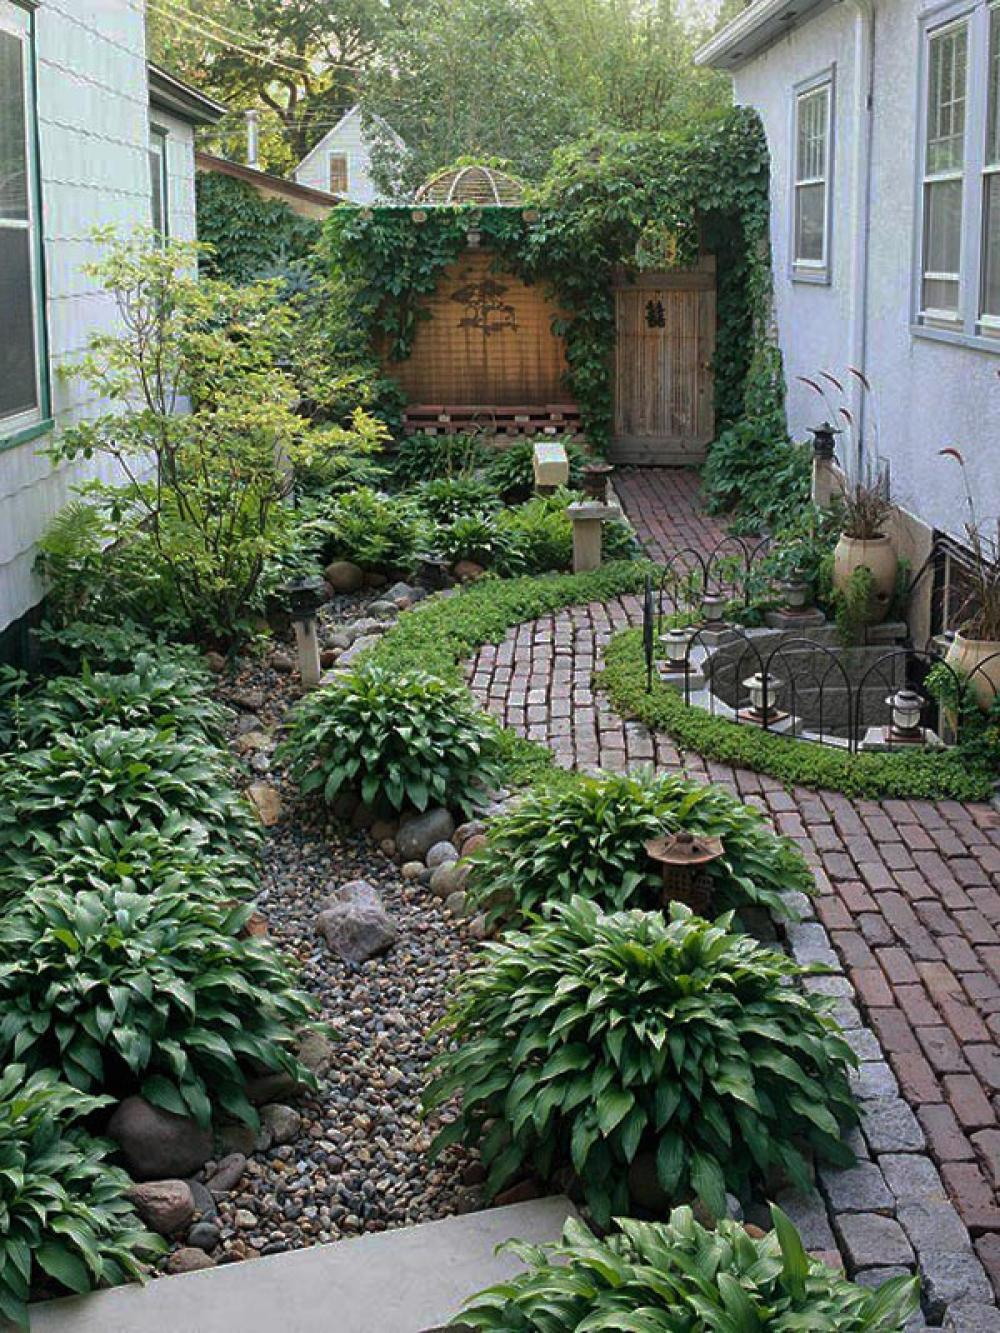 Small garden design in home home and design for Small home garden design ideas